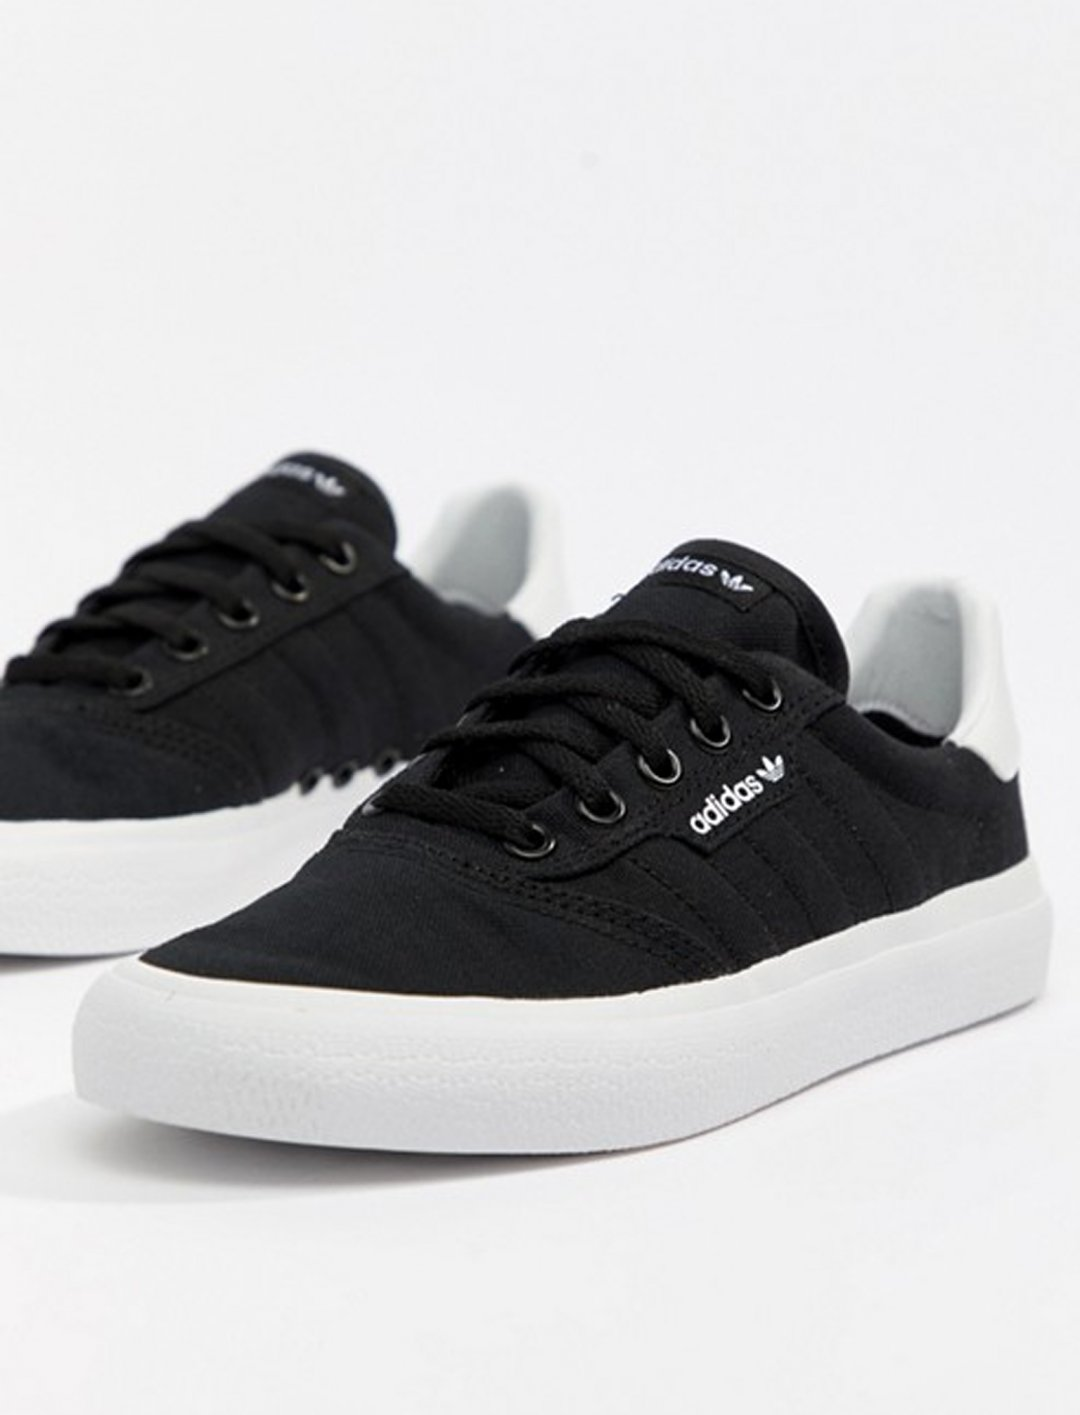 "Adidas Skateboarding Trainers {""id"":12,""product_section_id"":1,""name"":""Shoes"",""order"":12} Adidas"